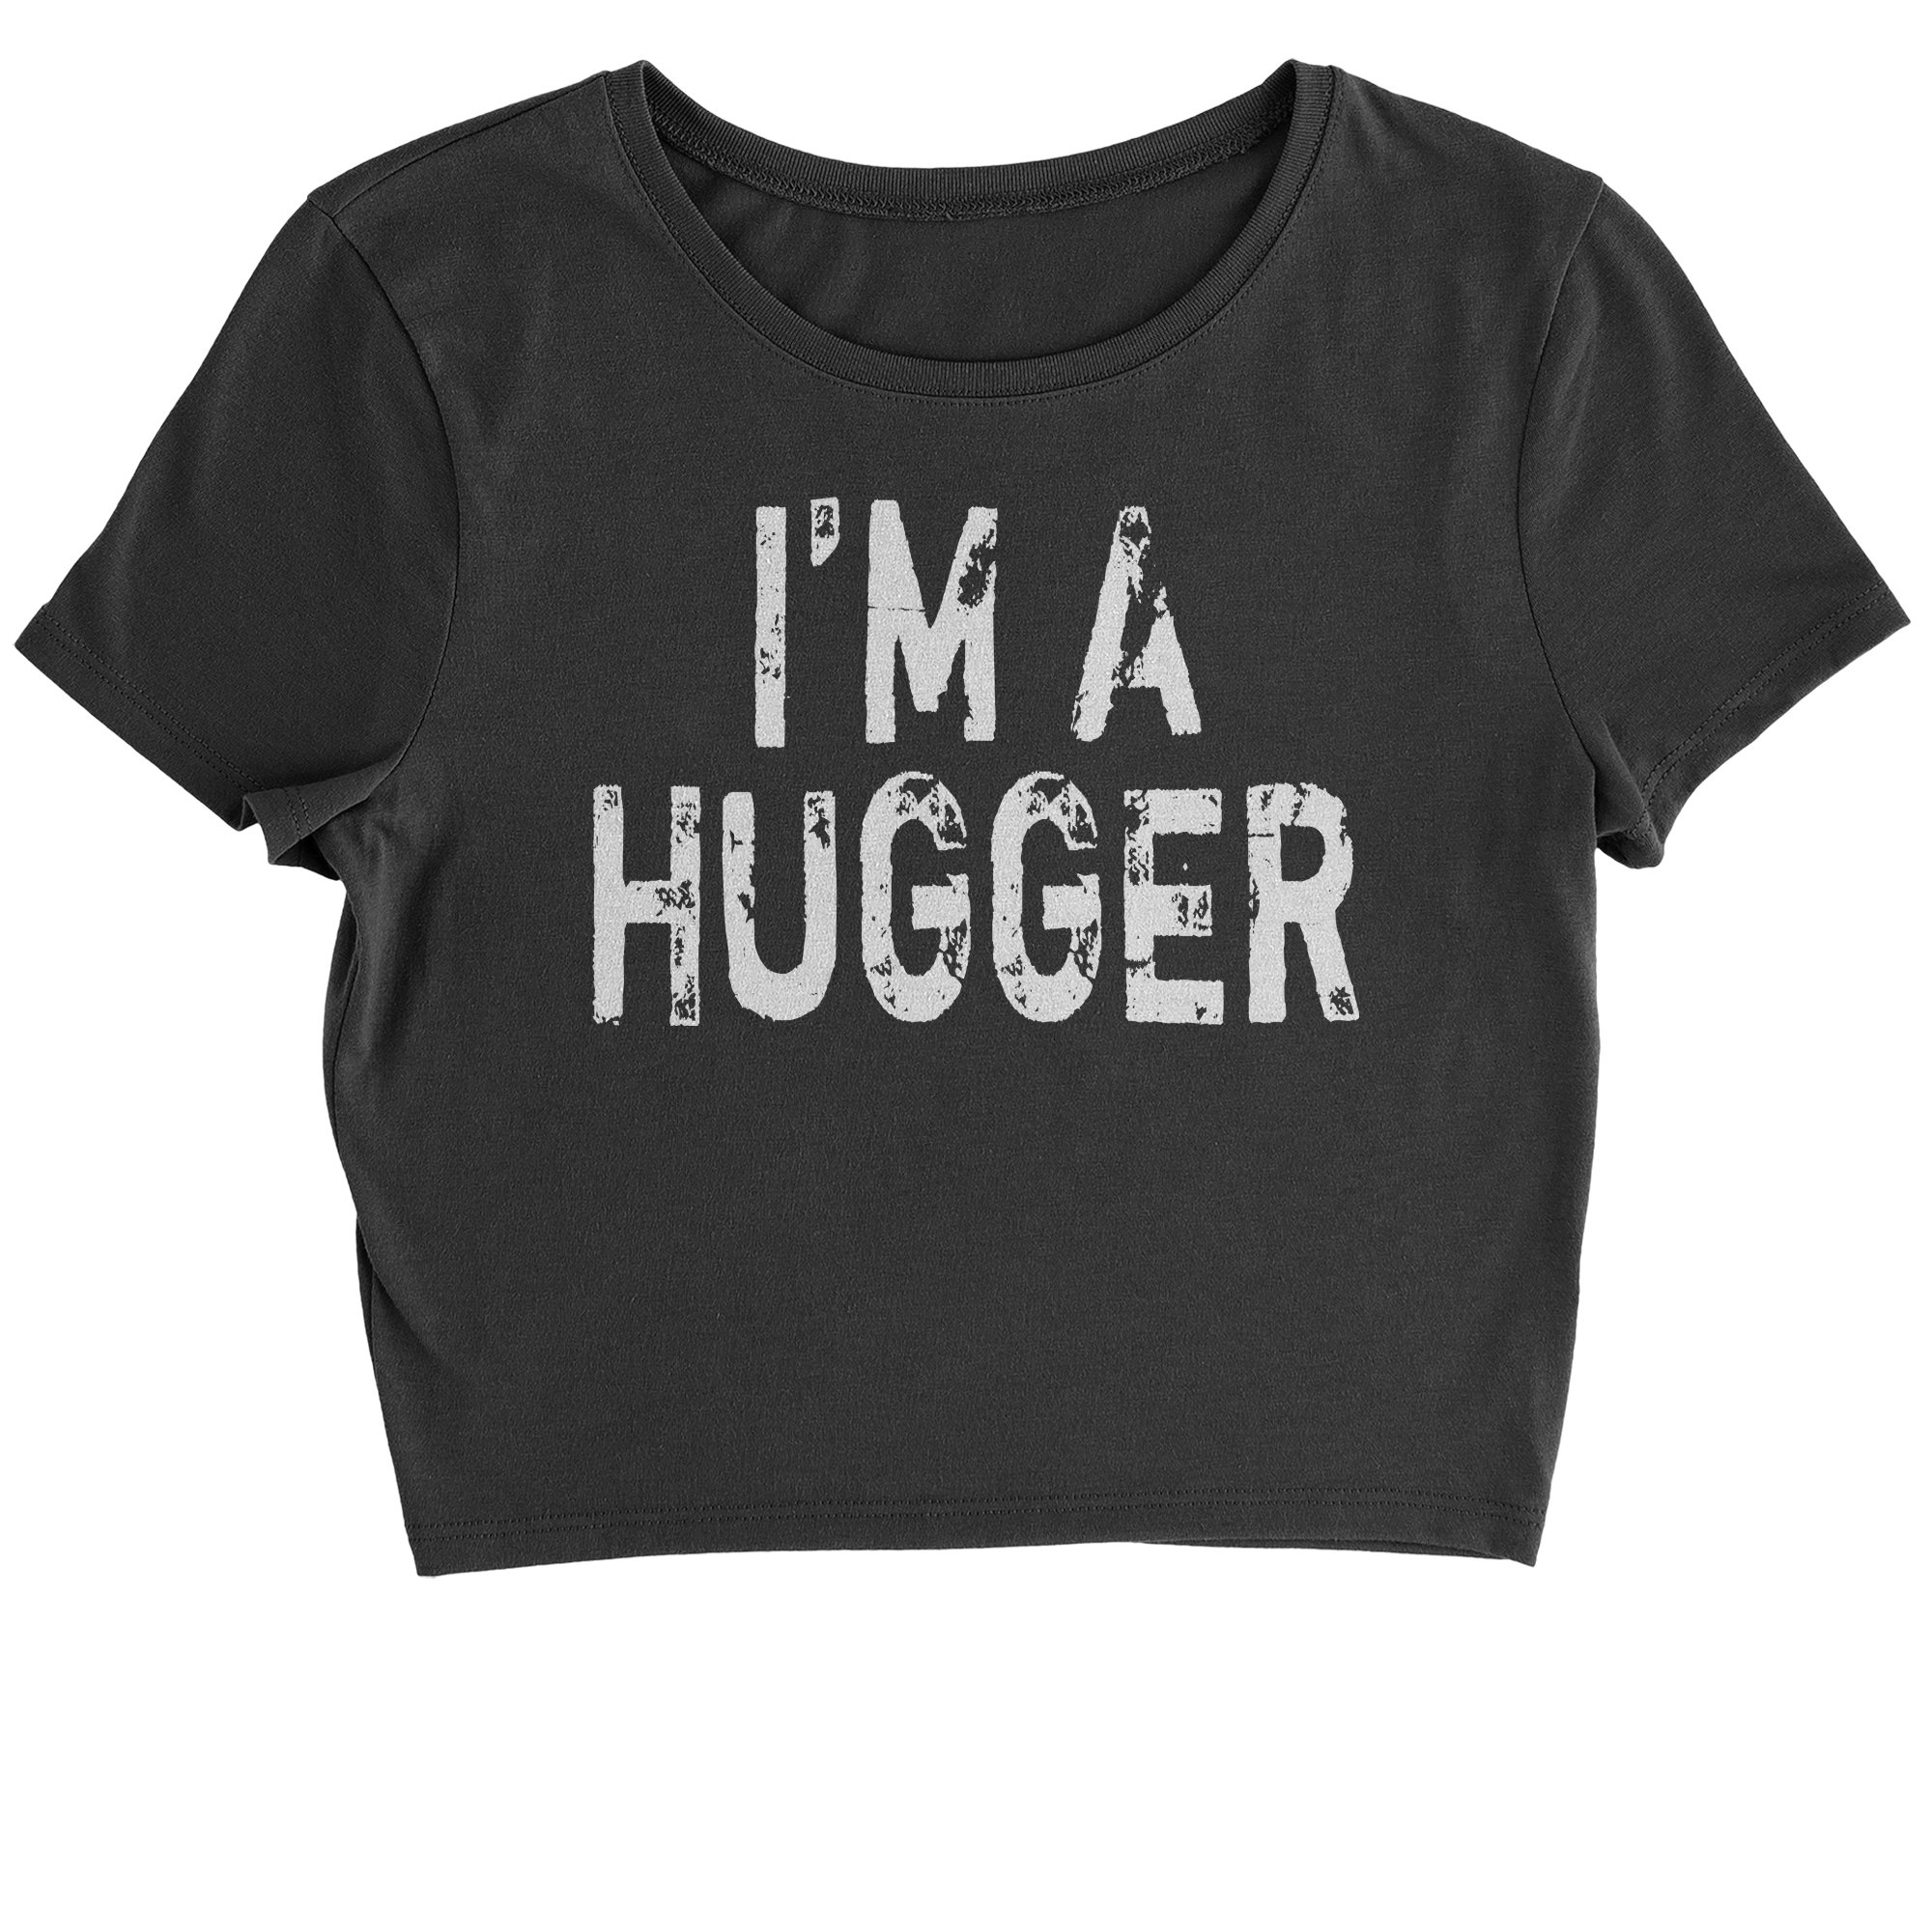 Expression Tees Cropped T-Shirt I'm A Hugger Wrestling T-Shirt Large Black by Expression Tees